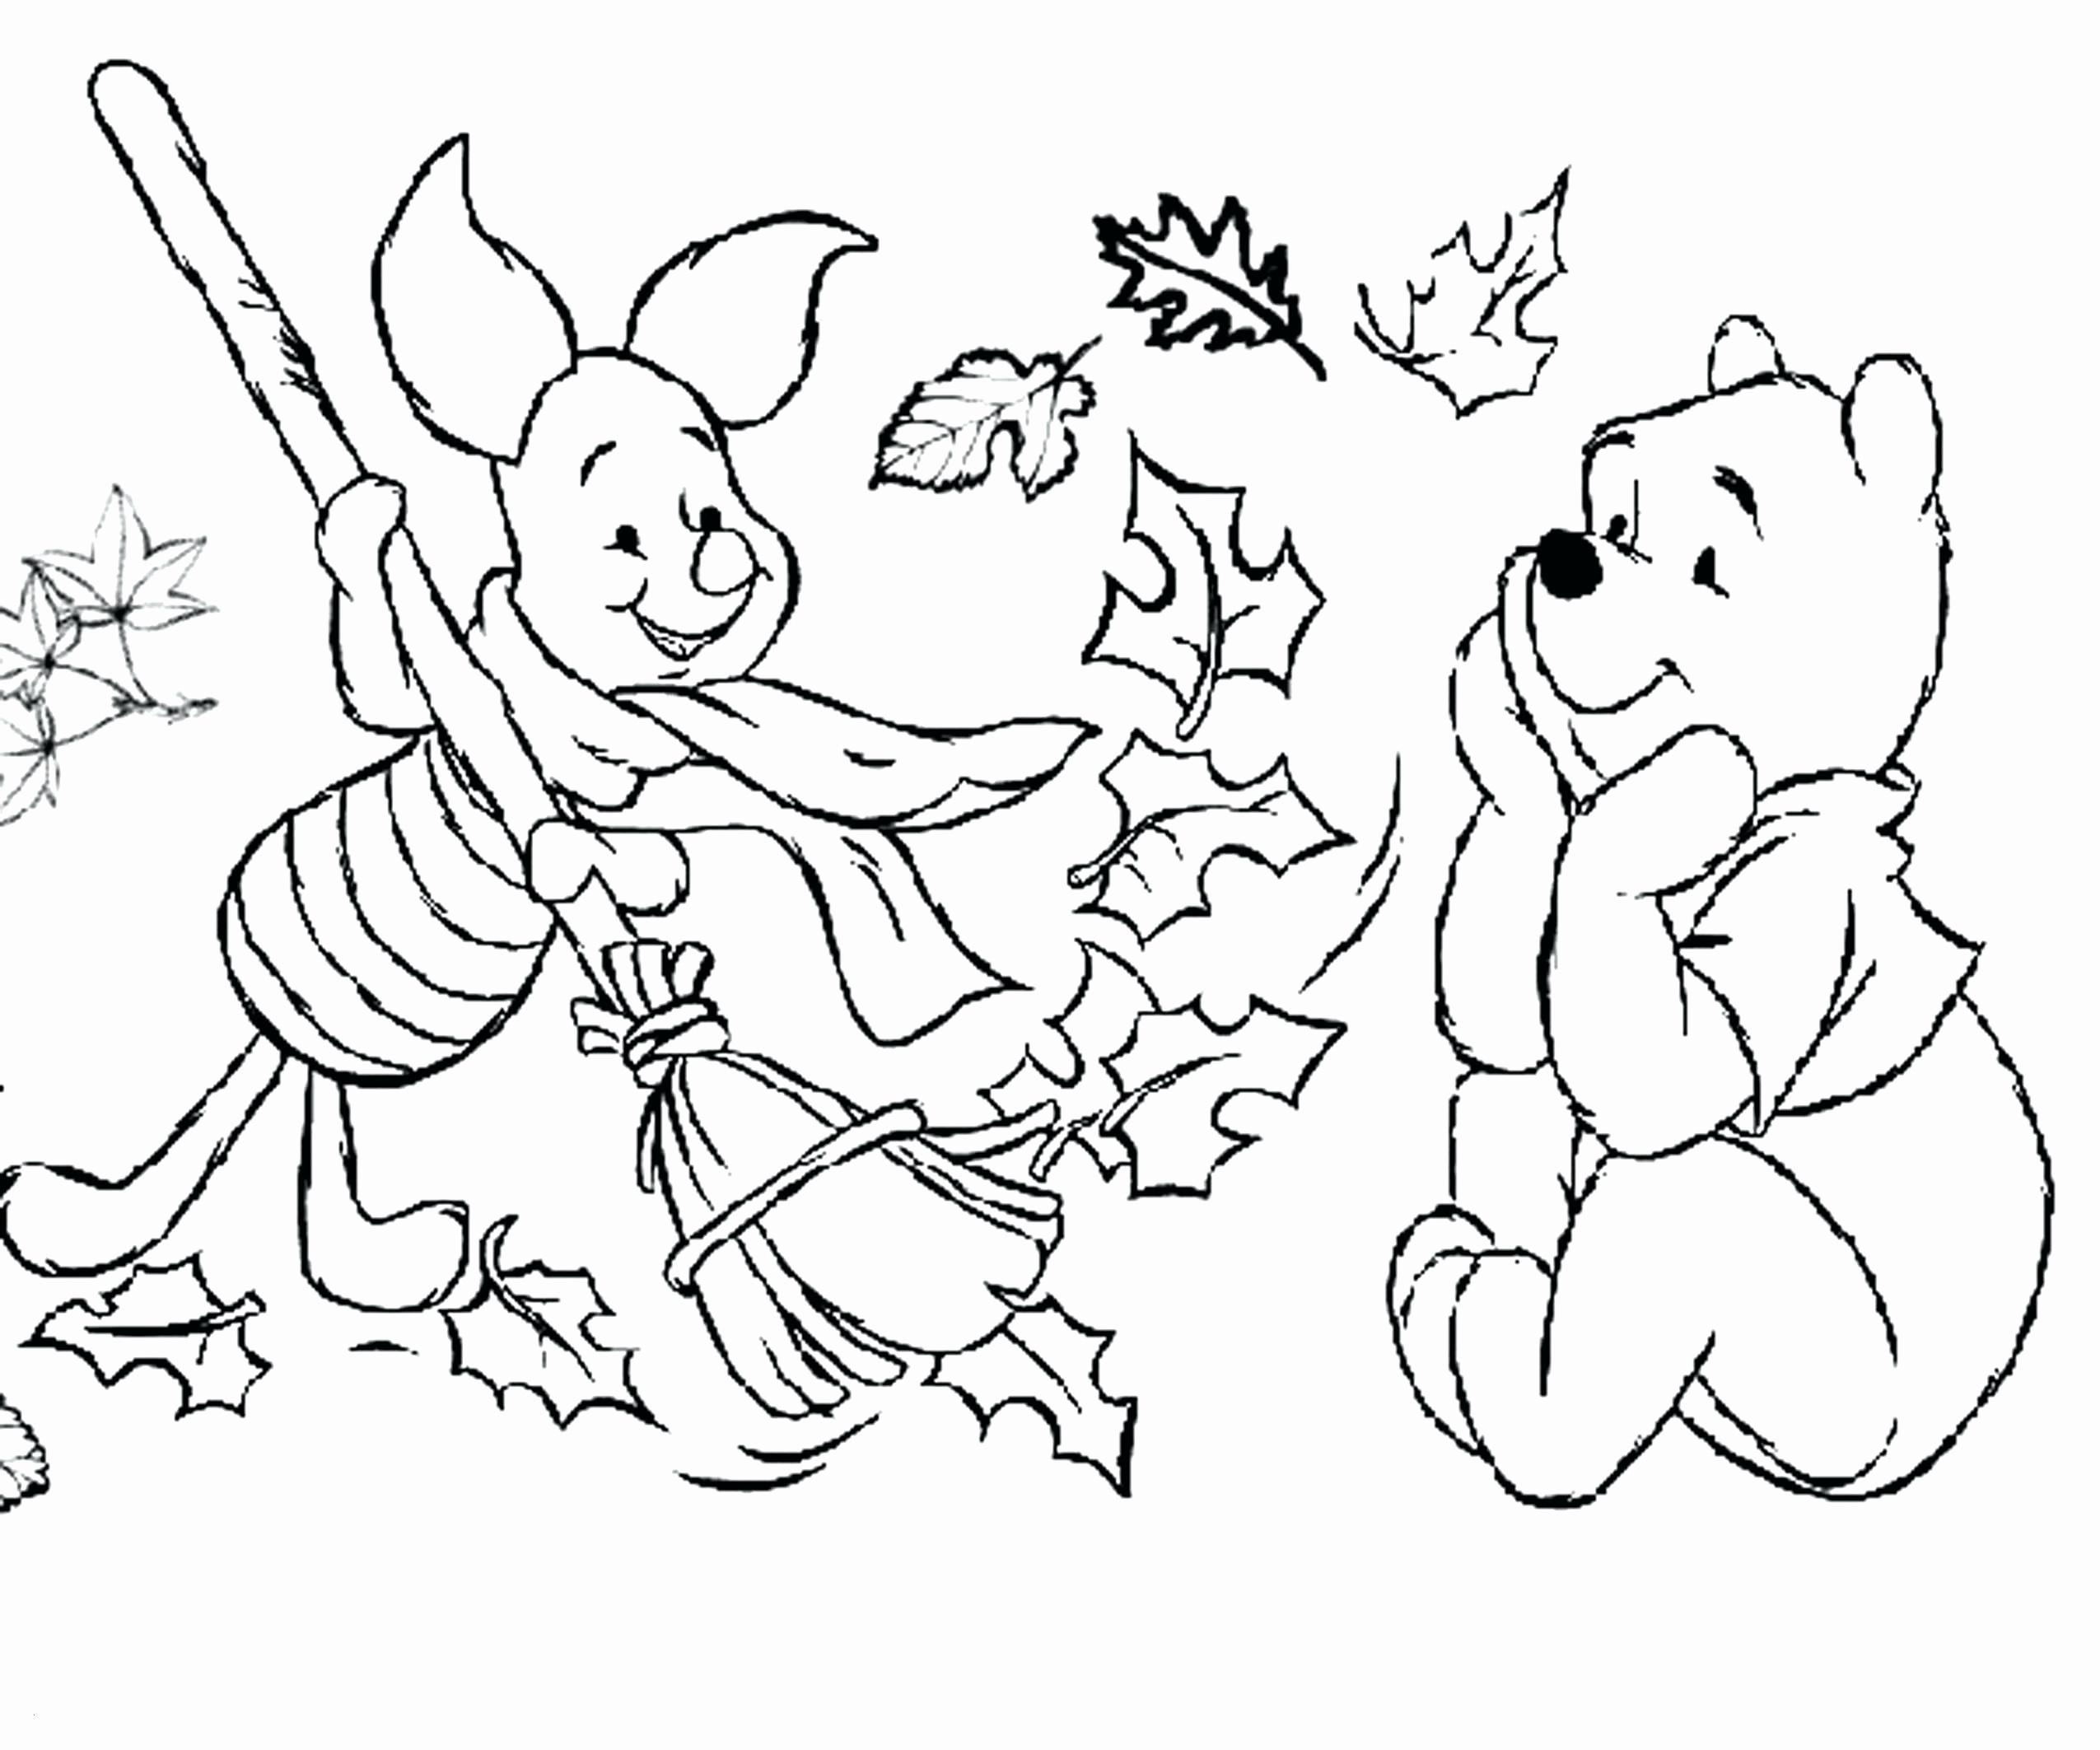 kid bible coloring pages Collection-Preschool Fall Coloring Pages Bible Coloring Sheets for Kids Wonderful Preschool Fall Coloring 16-f